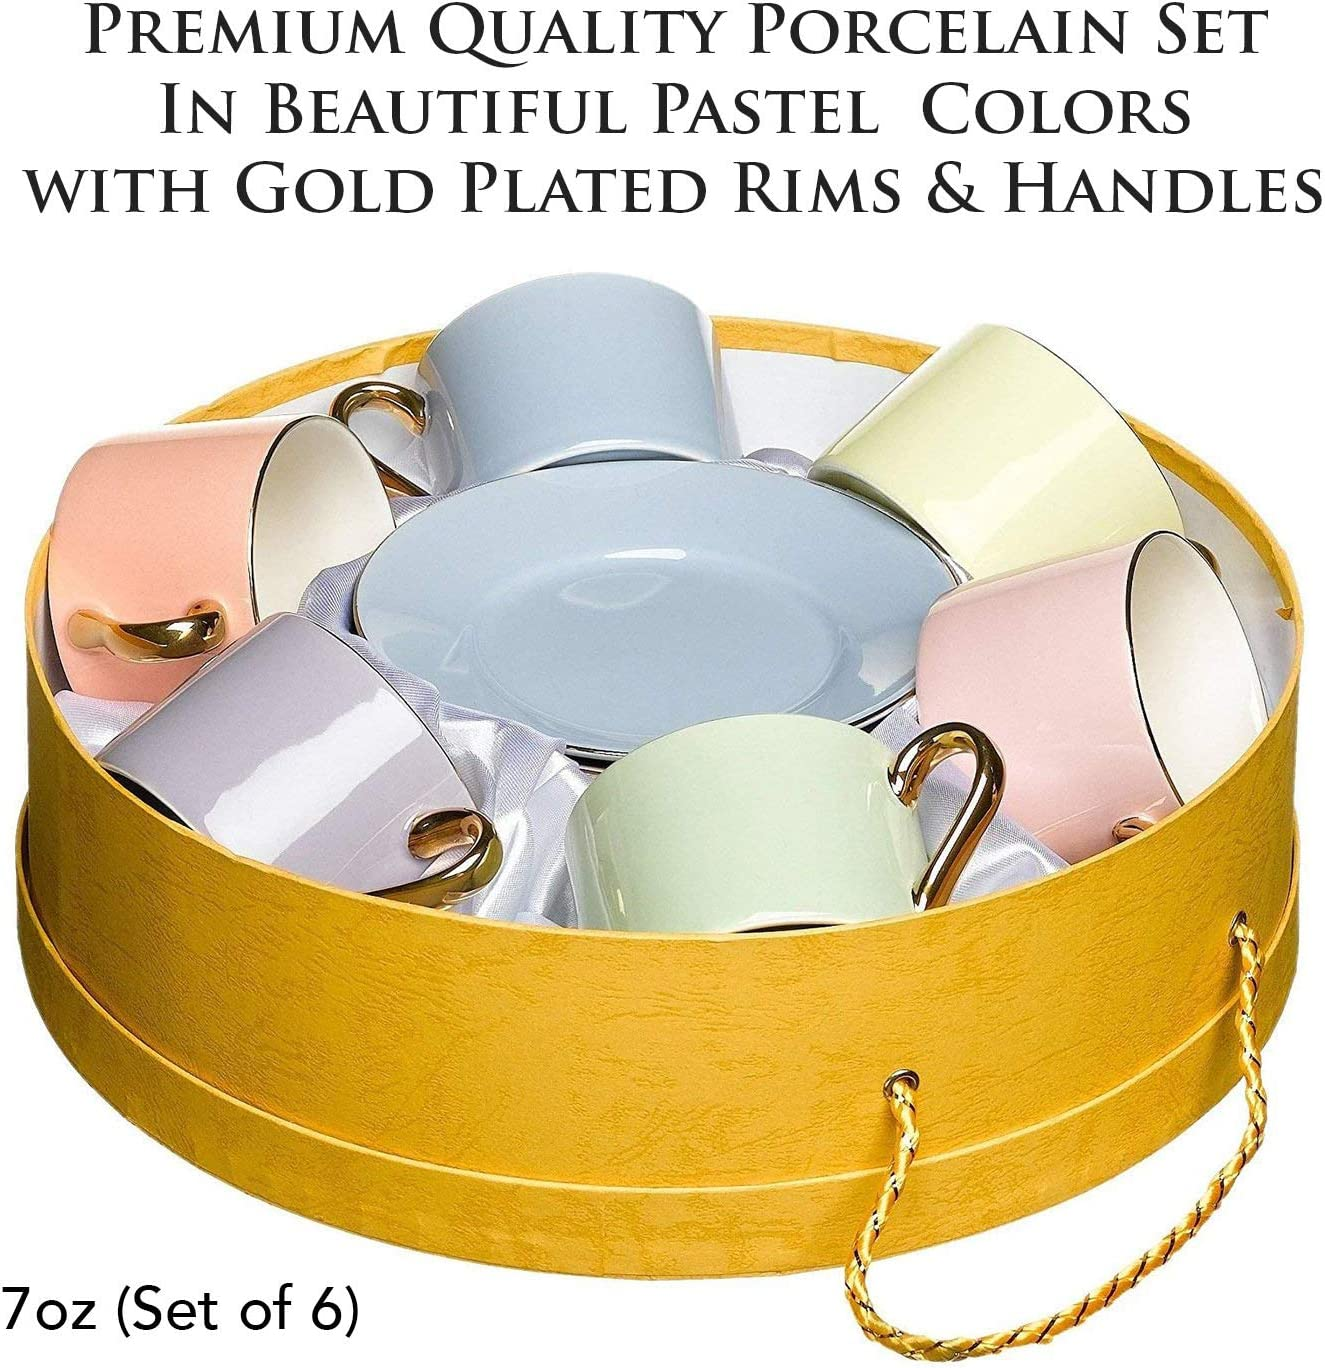 Yedi Houseware Classic Coffee and Tea Cups /& Saucers|Complete Set of 6 Premium Quality Porcelain Set In Beautiful Pastel Colors with Gold Plated Rims /& Handles|Stunning Hostess Gift Idea|7oz